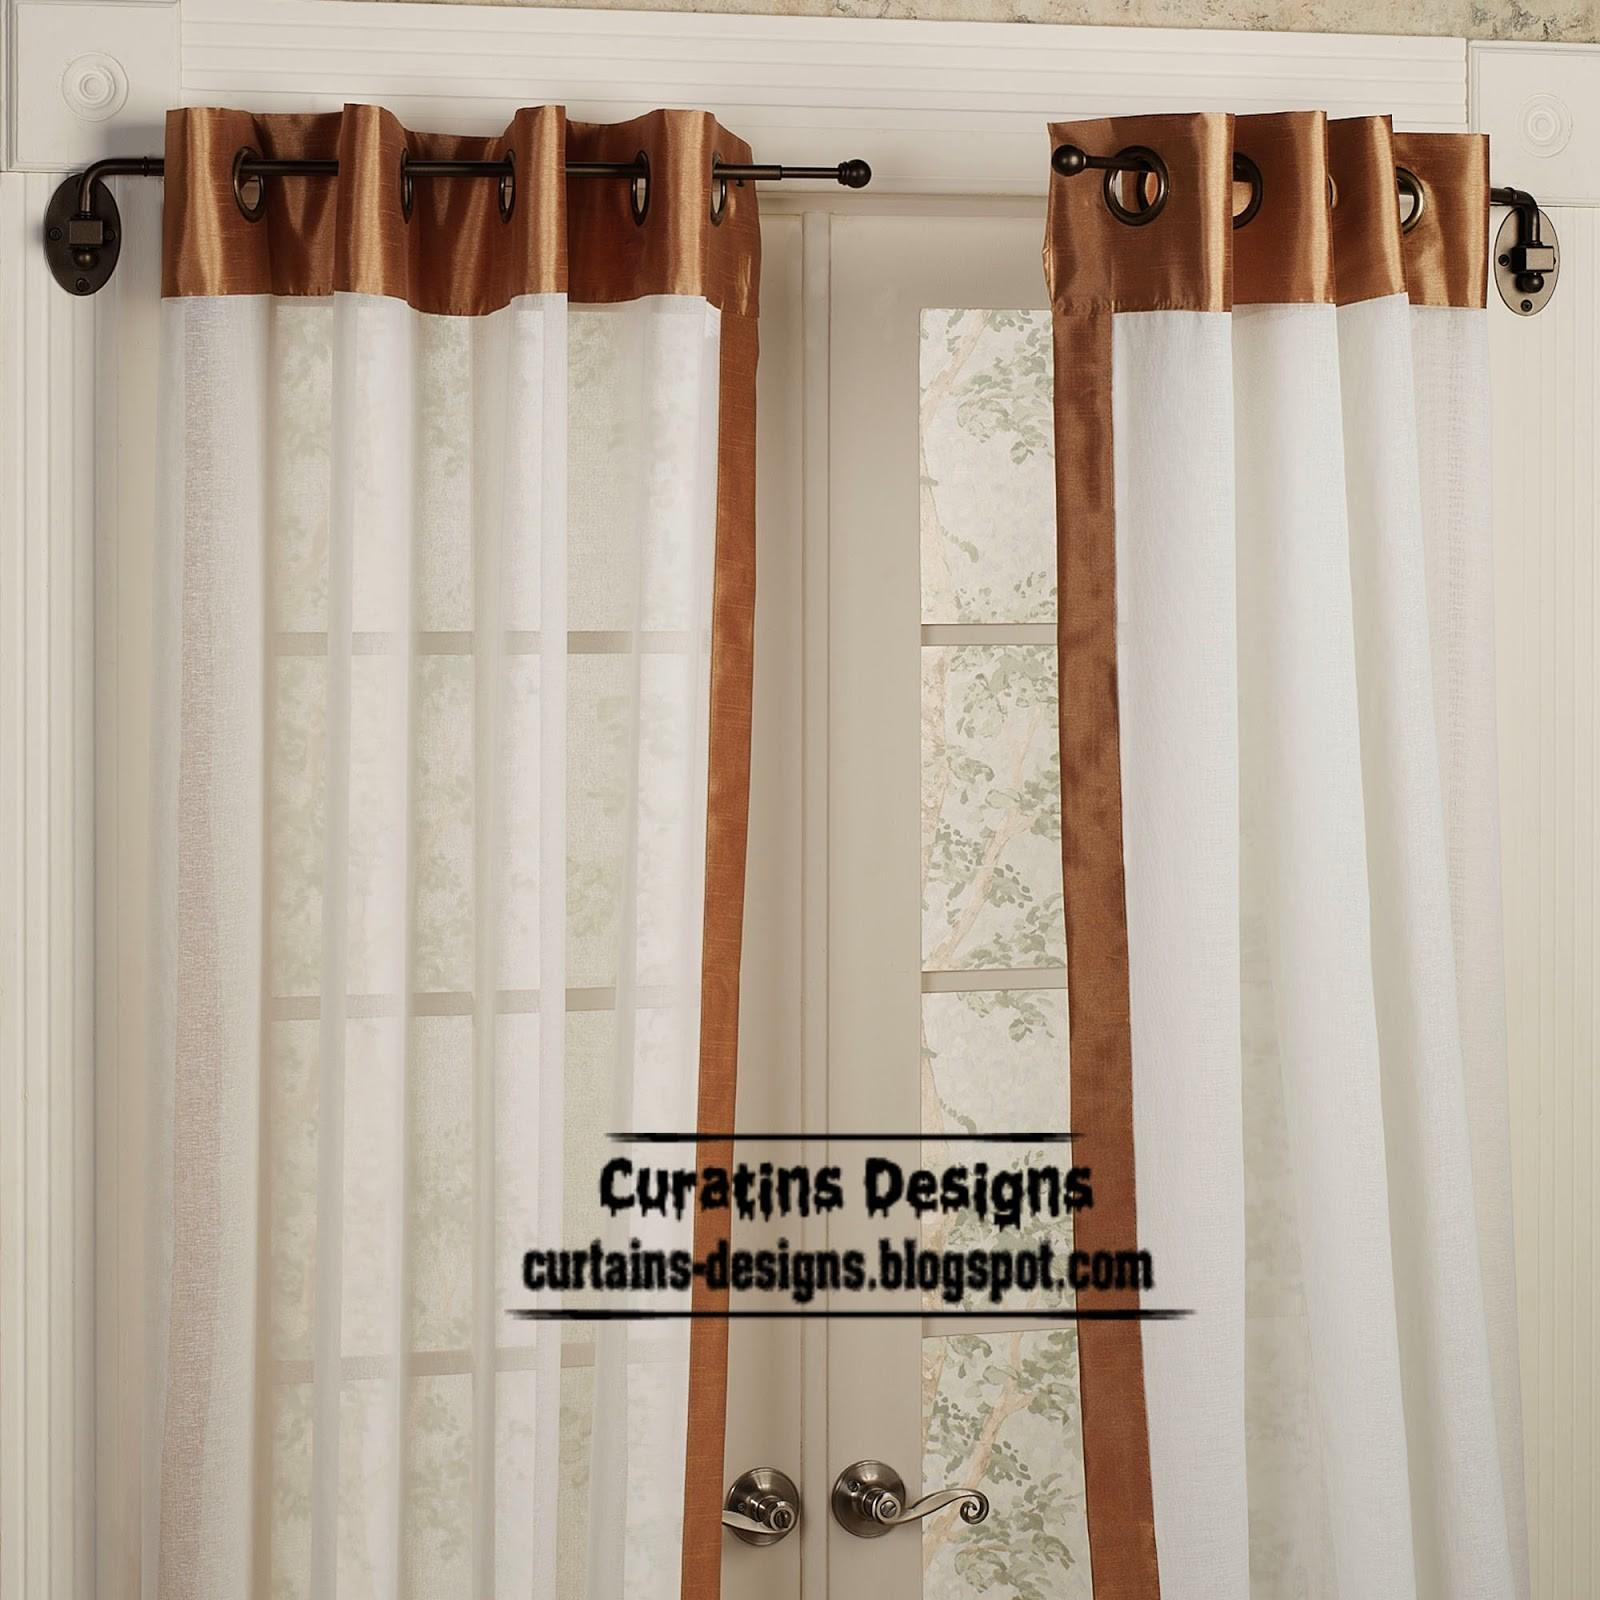 Swing Arm Curtain Rod Best Window Covering Ideas